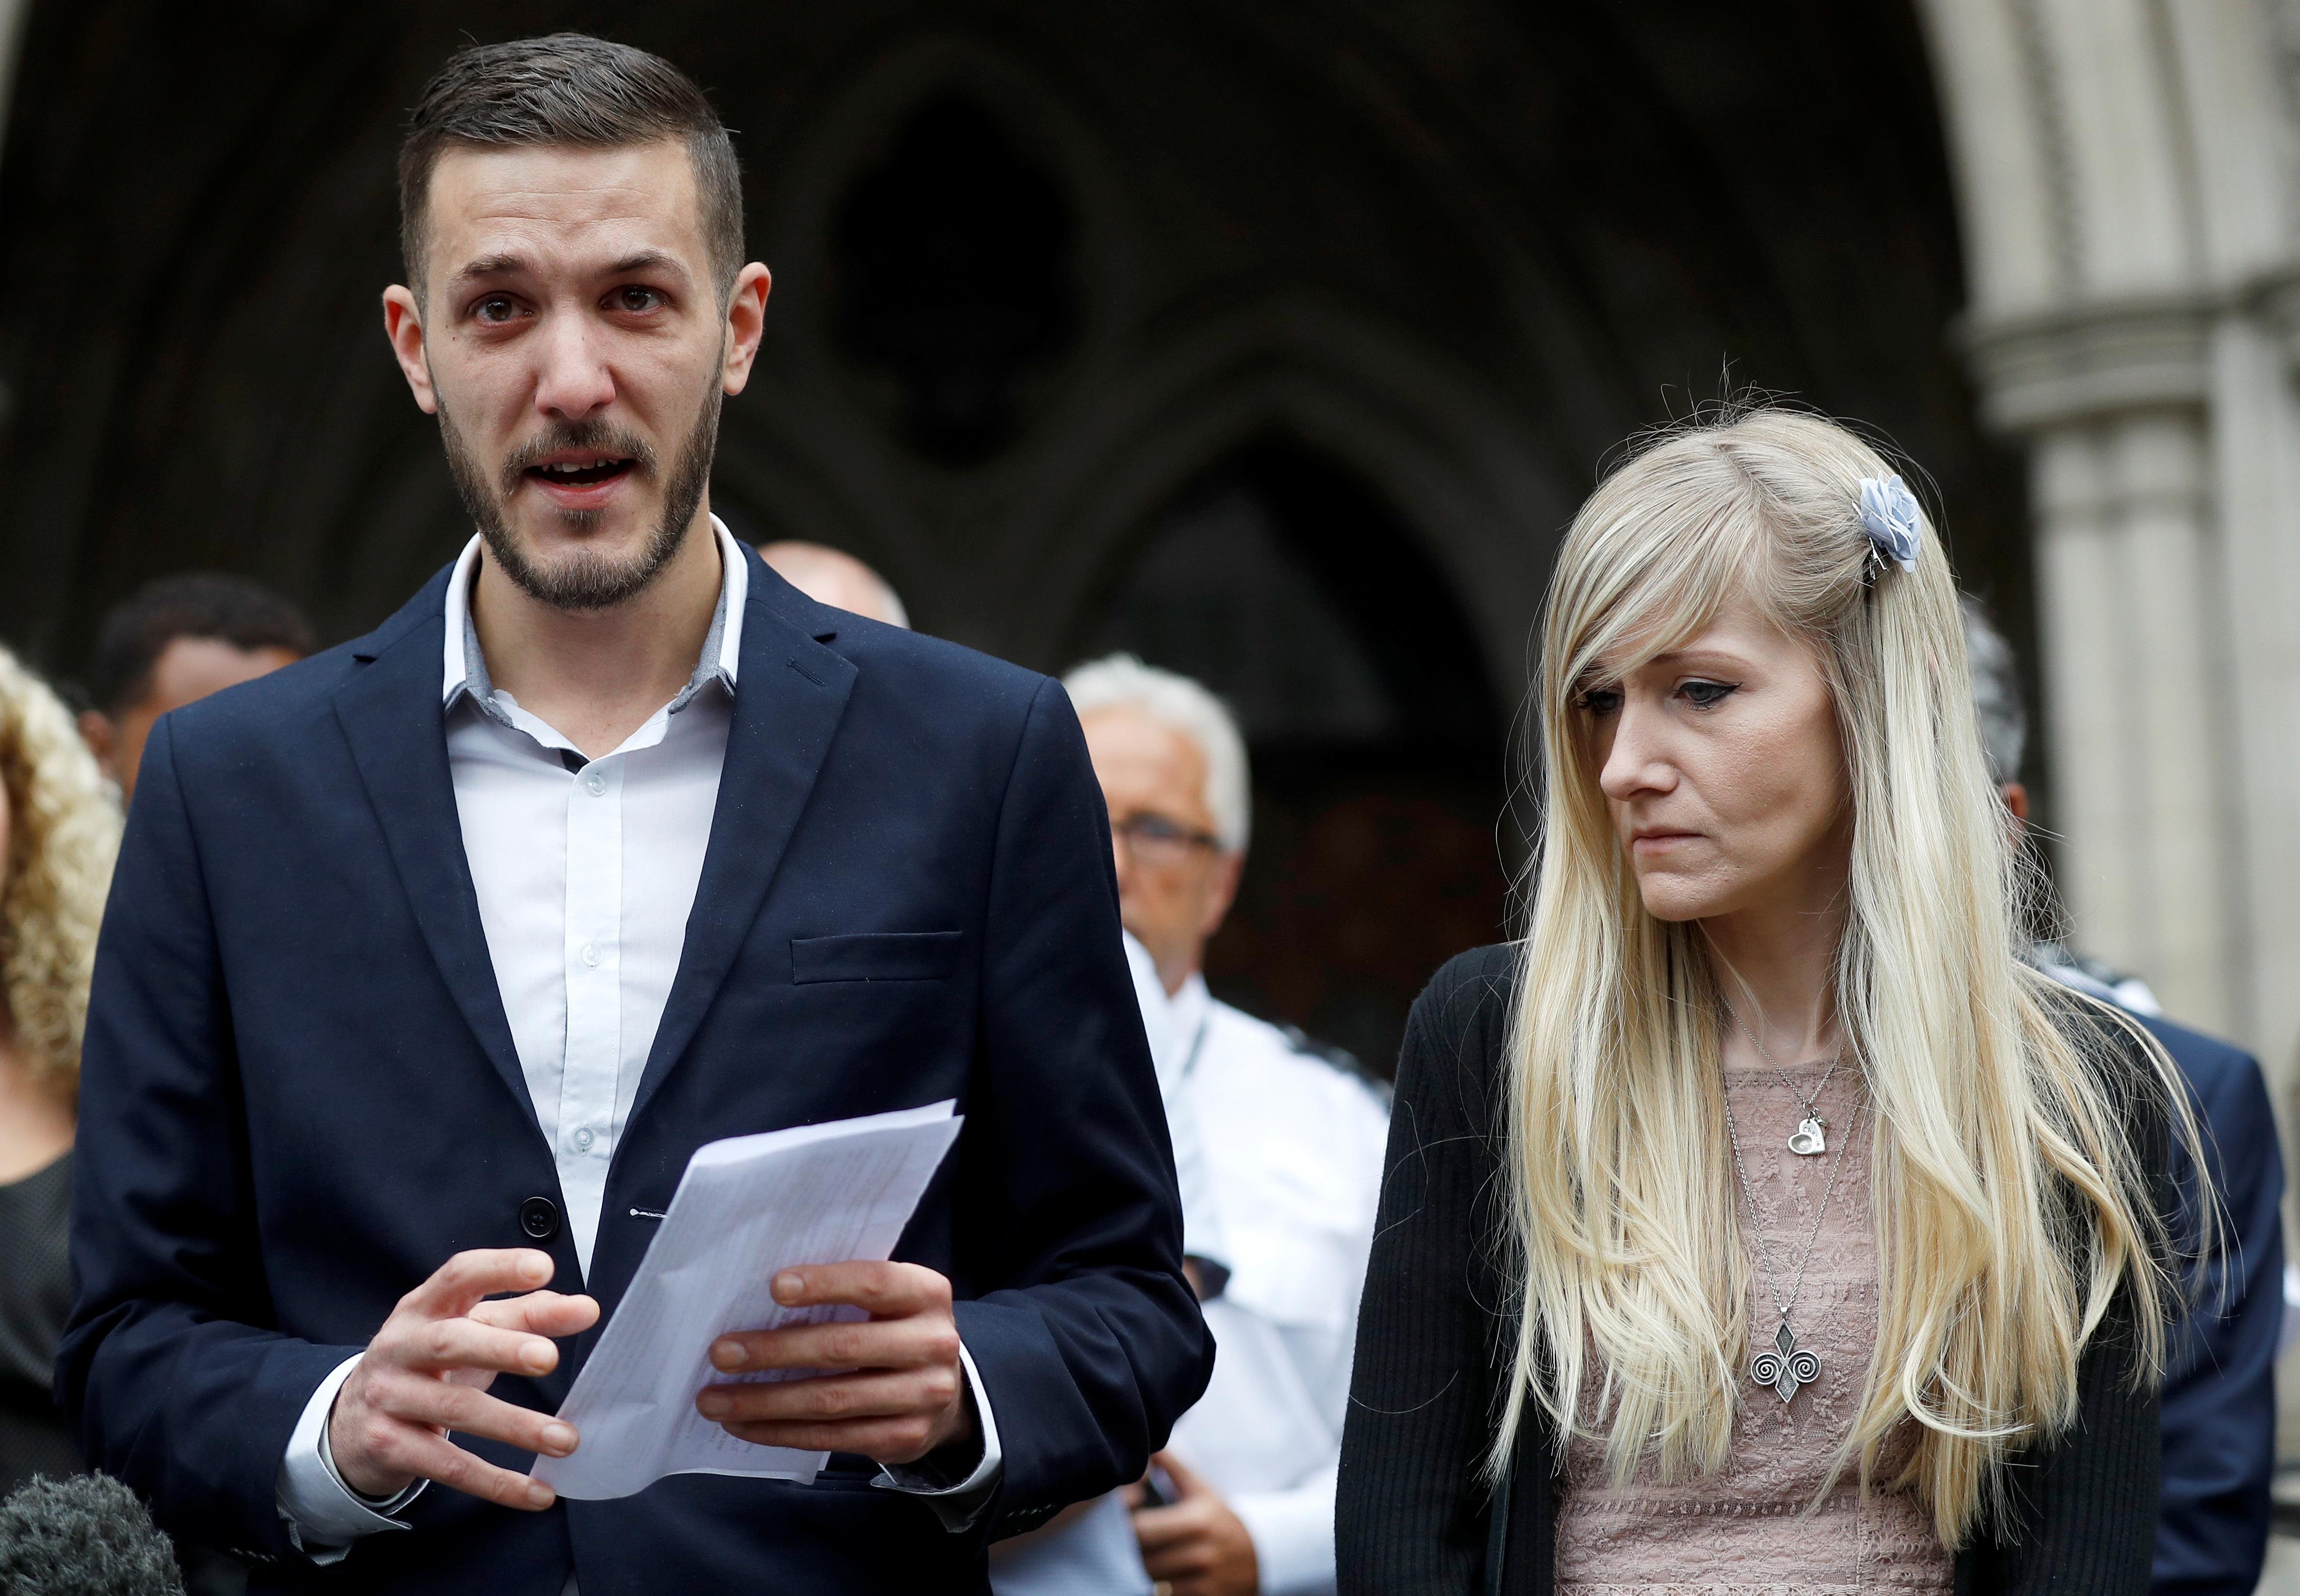 Charlie Gard's Parents Want to Bring Baby Home to Die